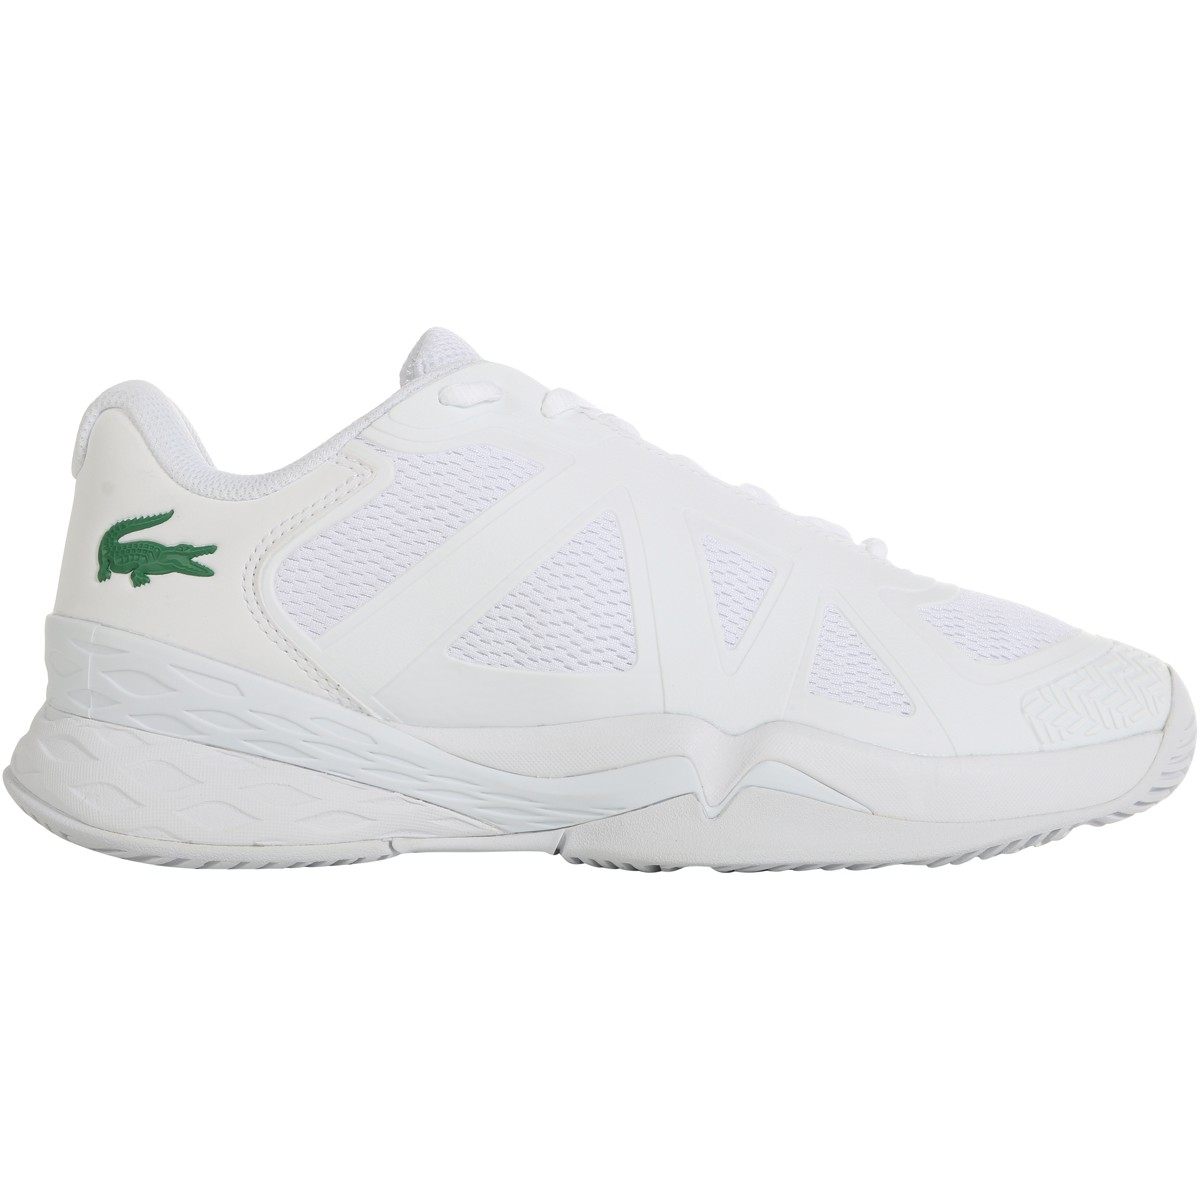 lacoste training shoes